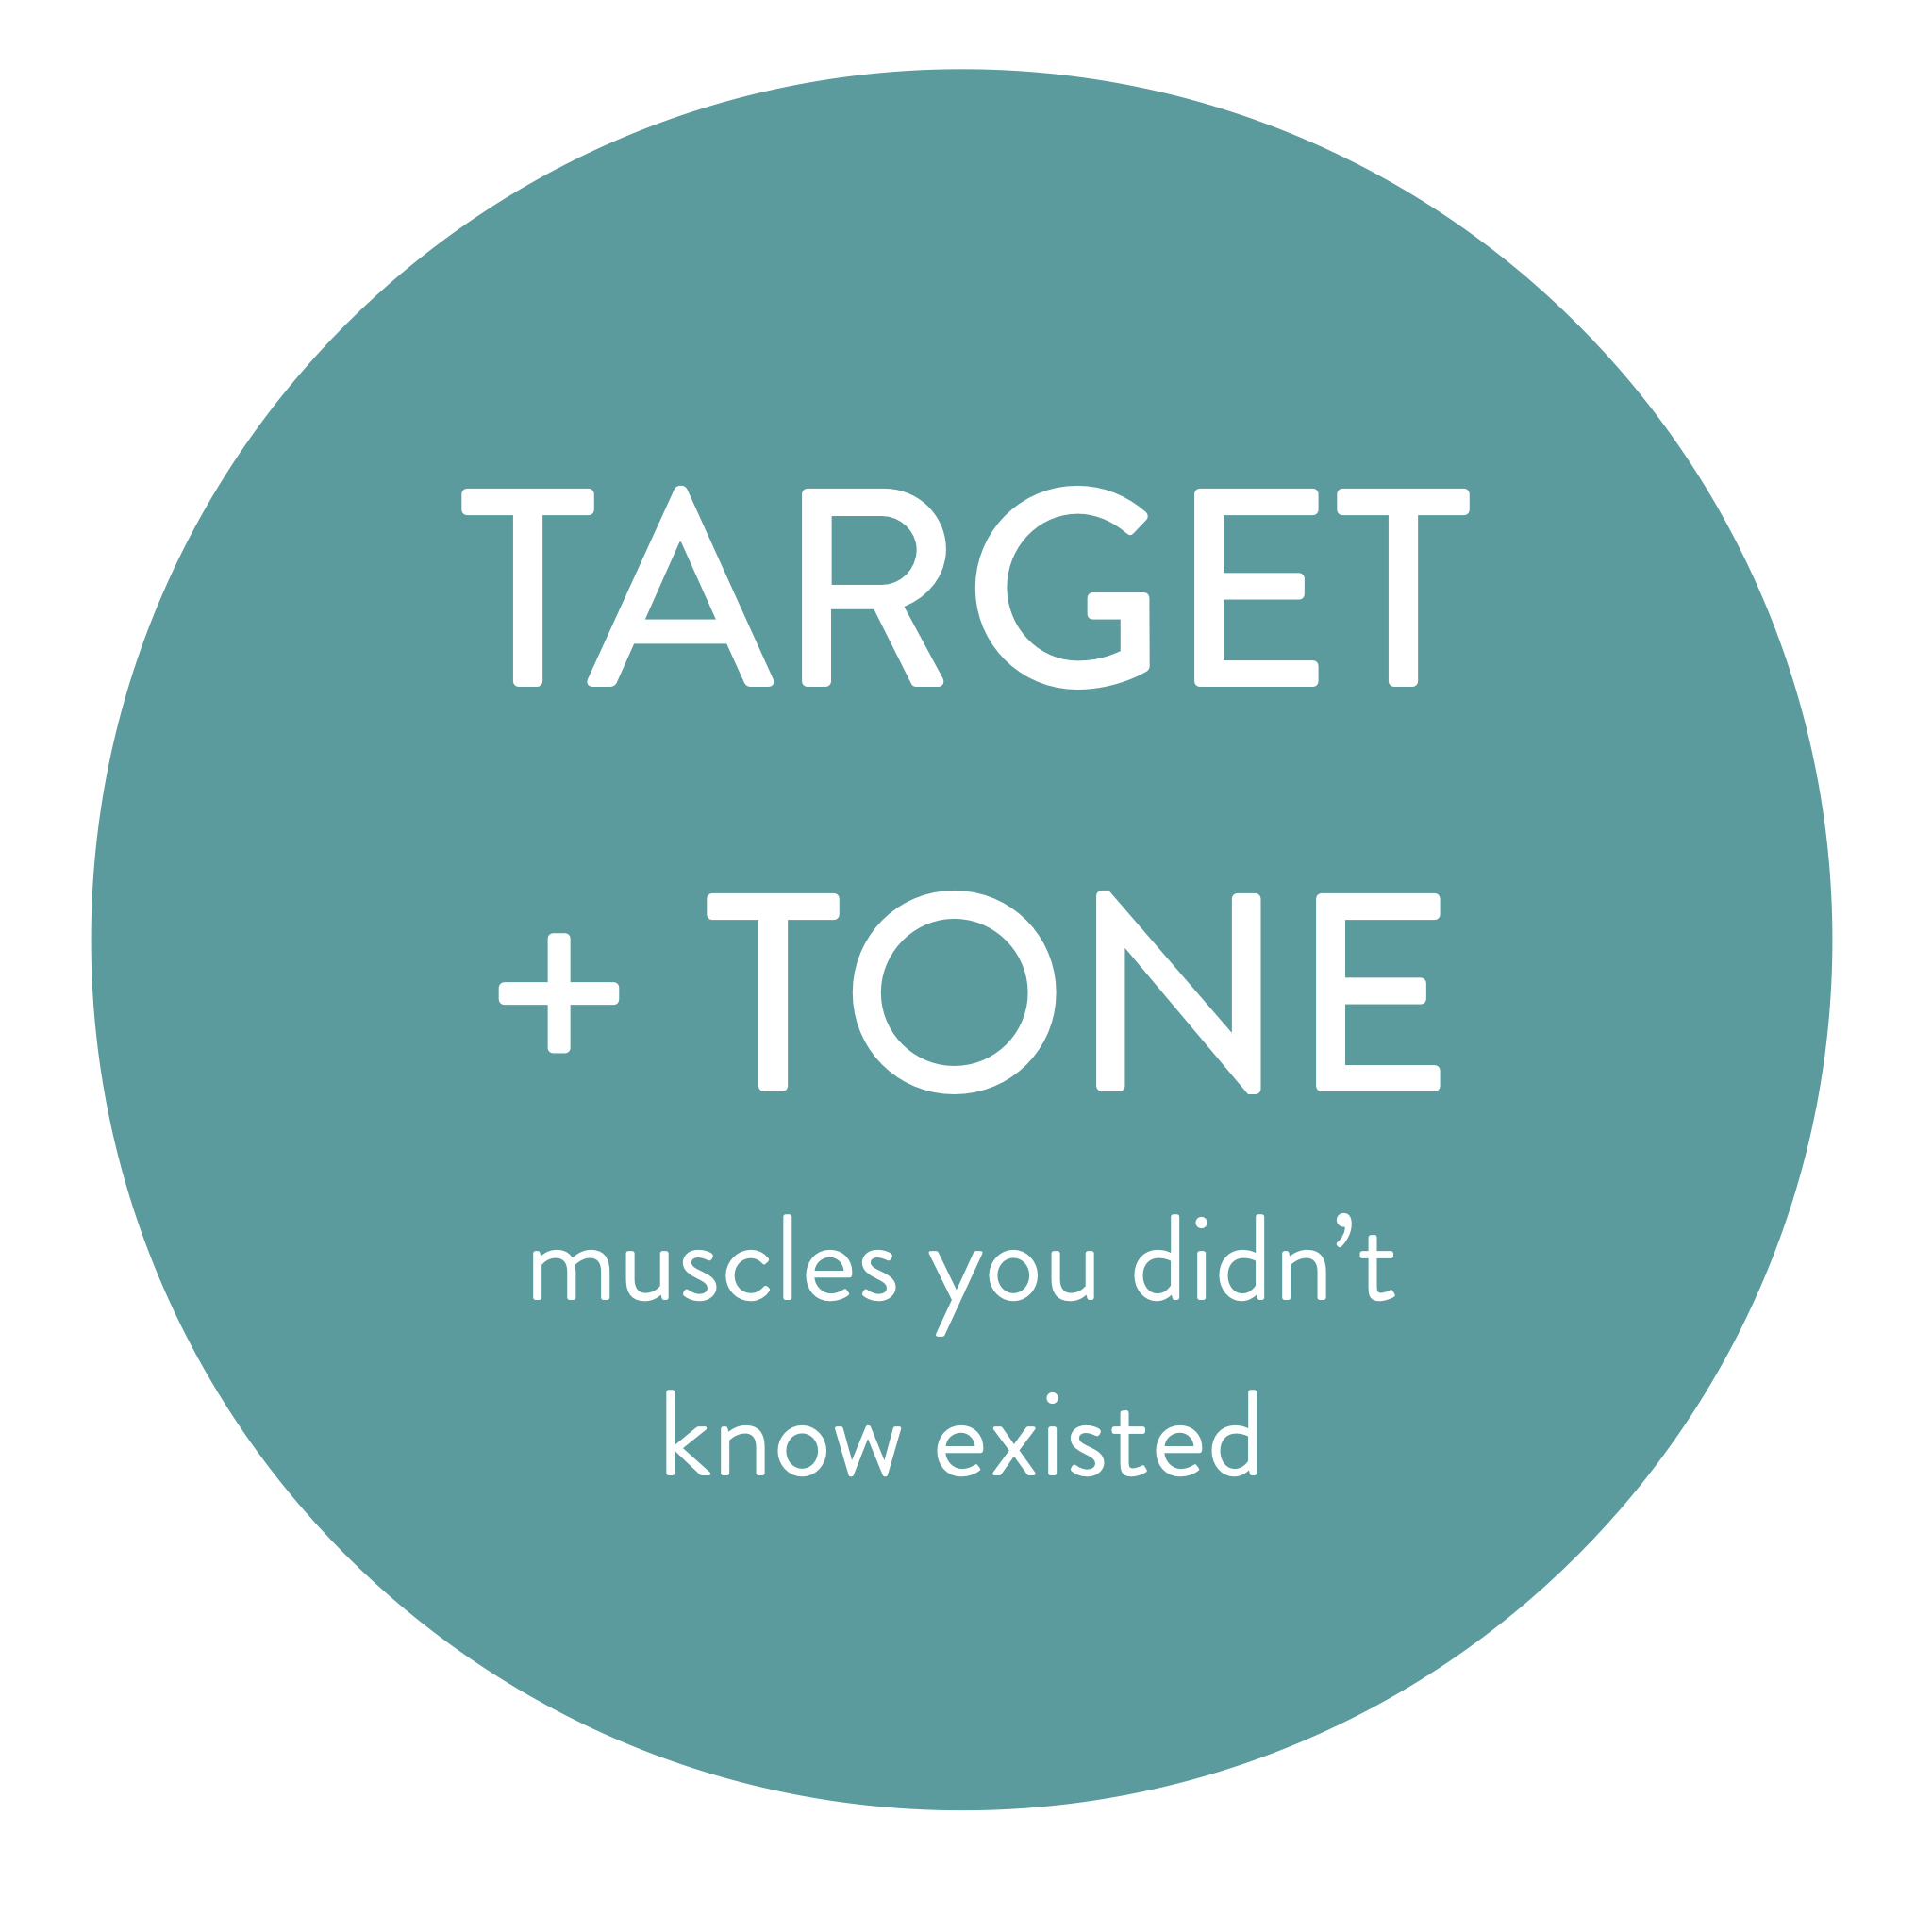 target and tone.PNG